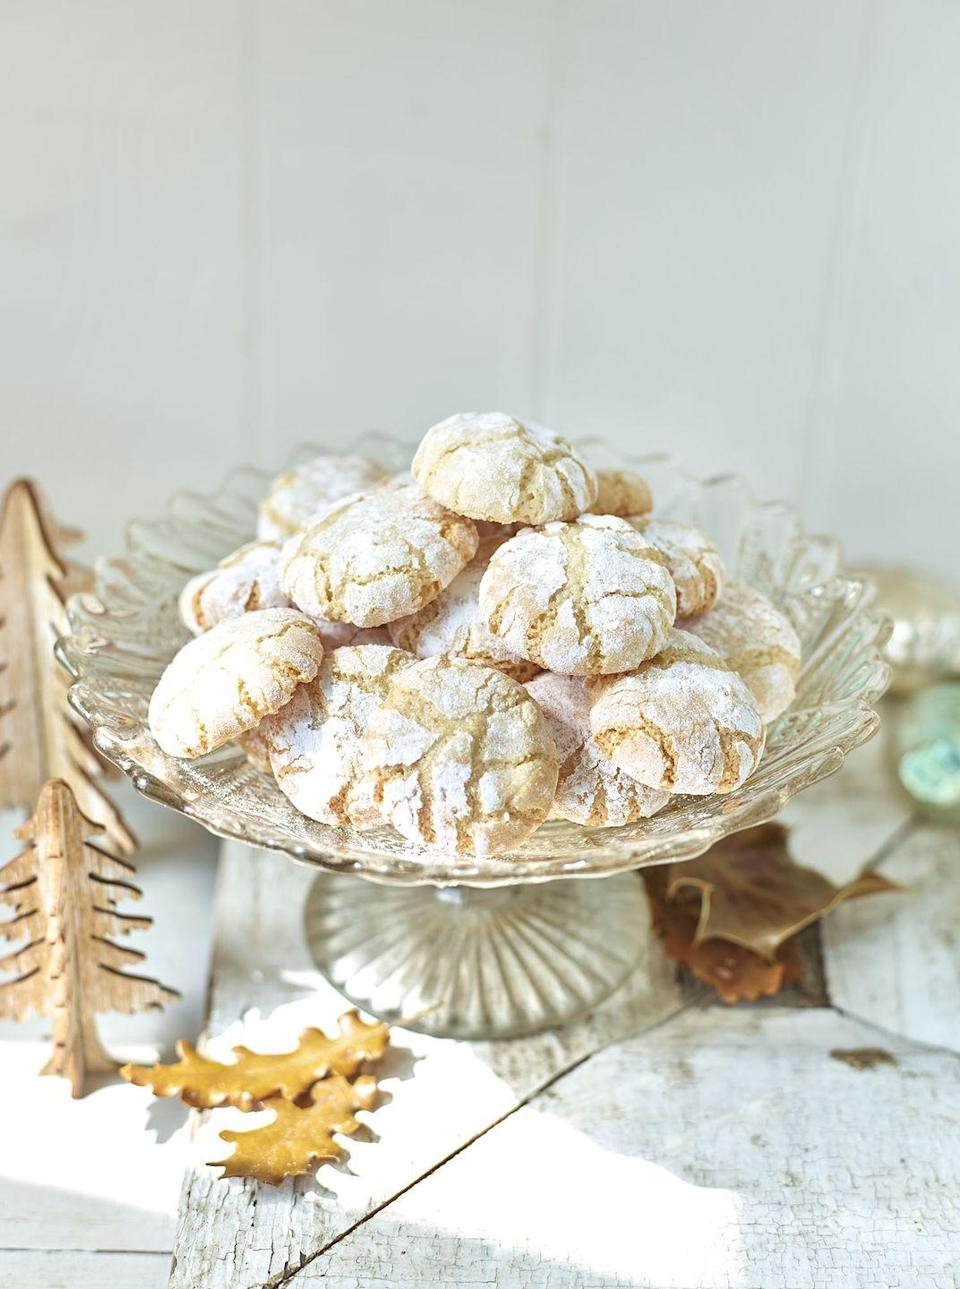 """<p>A classic Italian biscuit, amaretti biscuits are the perfect after dinner treat</p><p><strong>Recipe: <a href=""""https://www.goodhousekeeping.com/uk/food/recipes/a25304171/amaretti-biscuits/"""" rel=""""nofollow noopener"""" target=""""_blank"""" data-ylk=""""slk:Five-ingredient amaretti biscuits"""" class=""""link rapid-noclick-resp"""">Five-ingredient amaretti biscuits</a></strong></p>"""